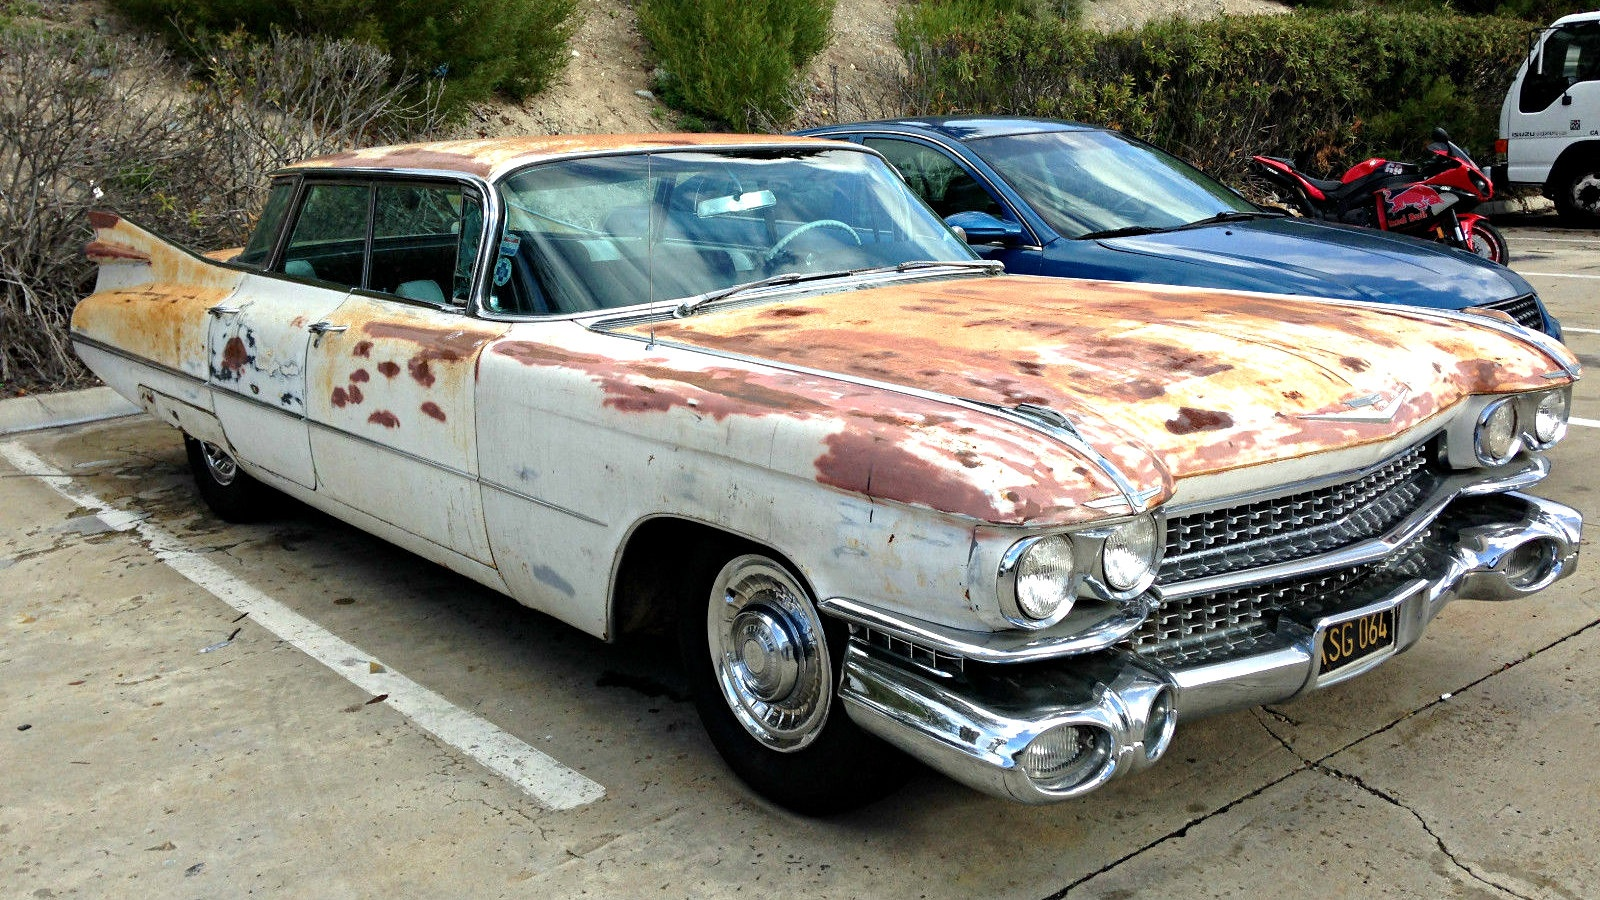 Sand For Sale >> Sanded For No Reason: 1959 Cadillac Sedan Deville